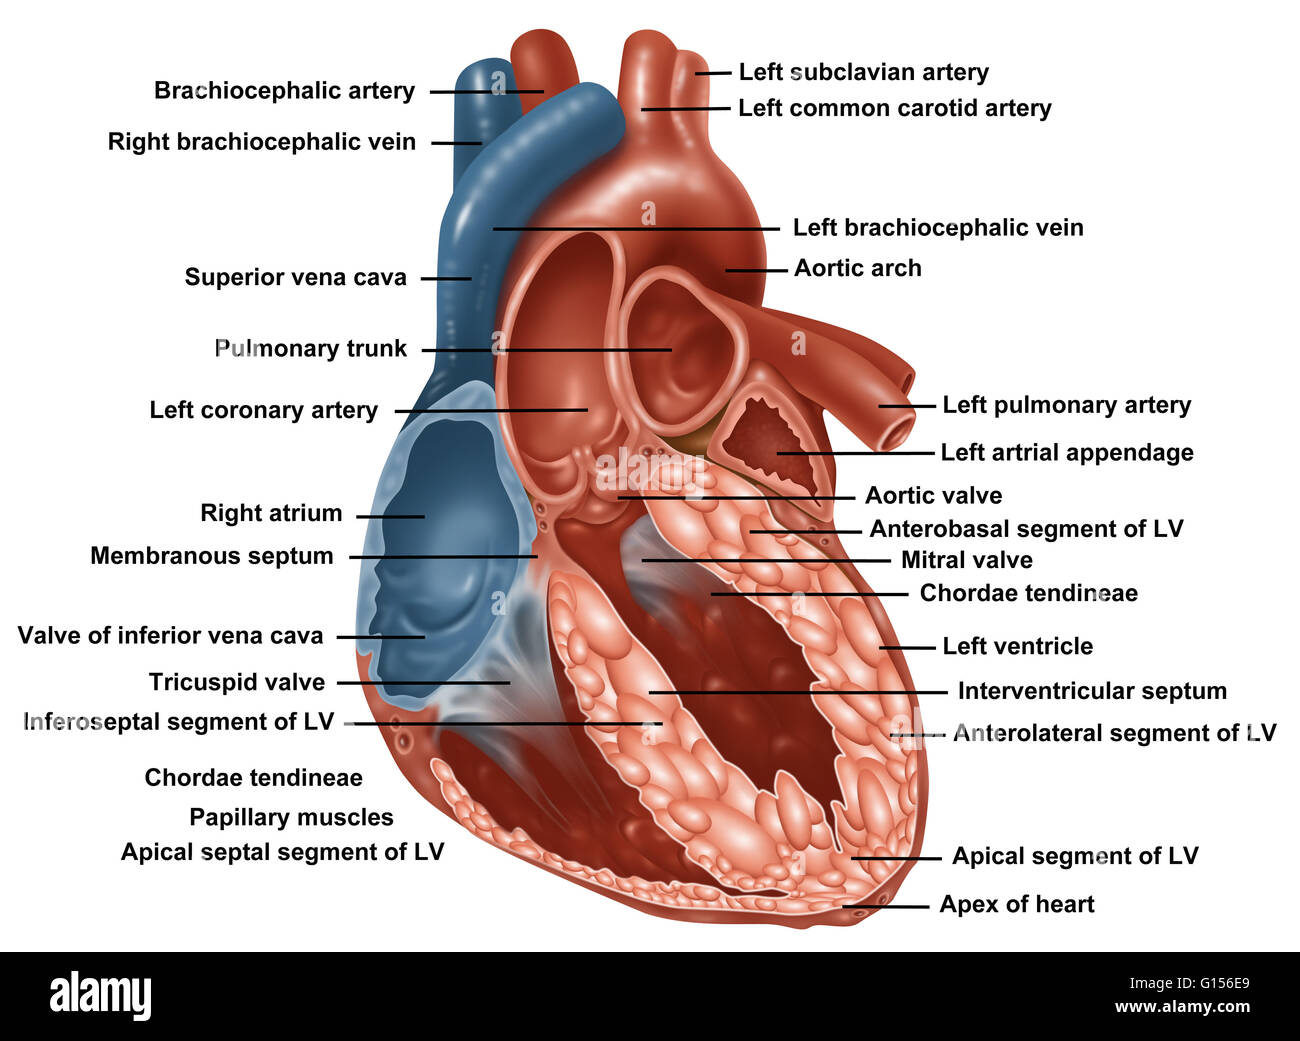 Anatomy Of A Normal Human Heart With Everything Labeled Stock Photo